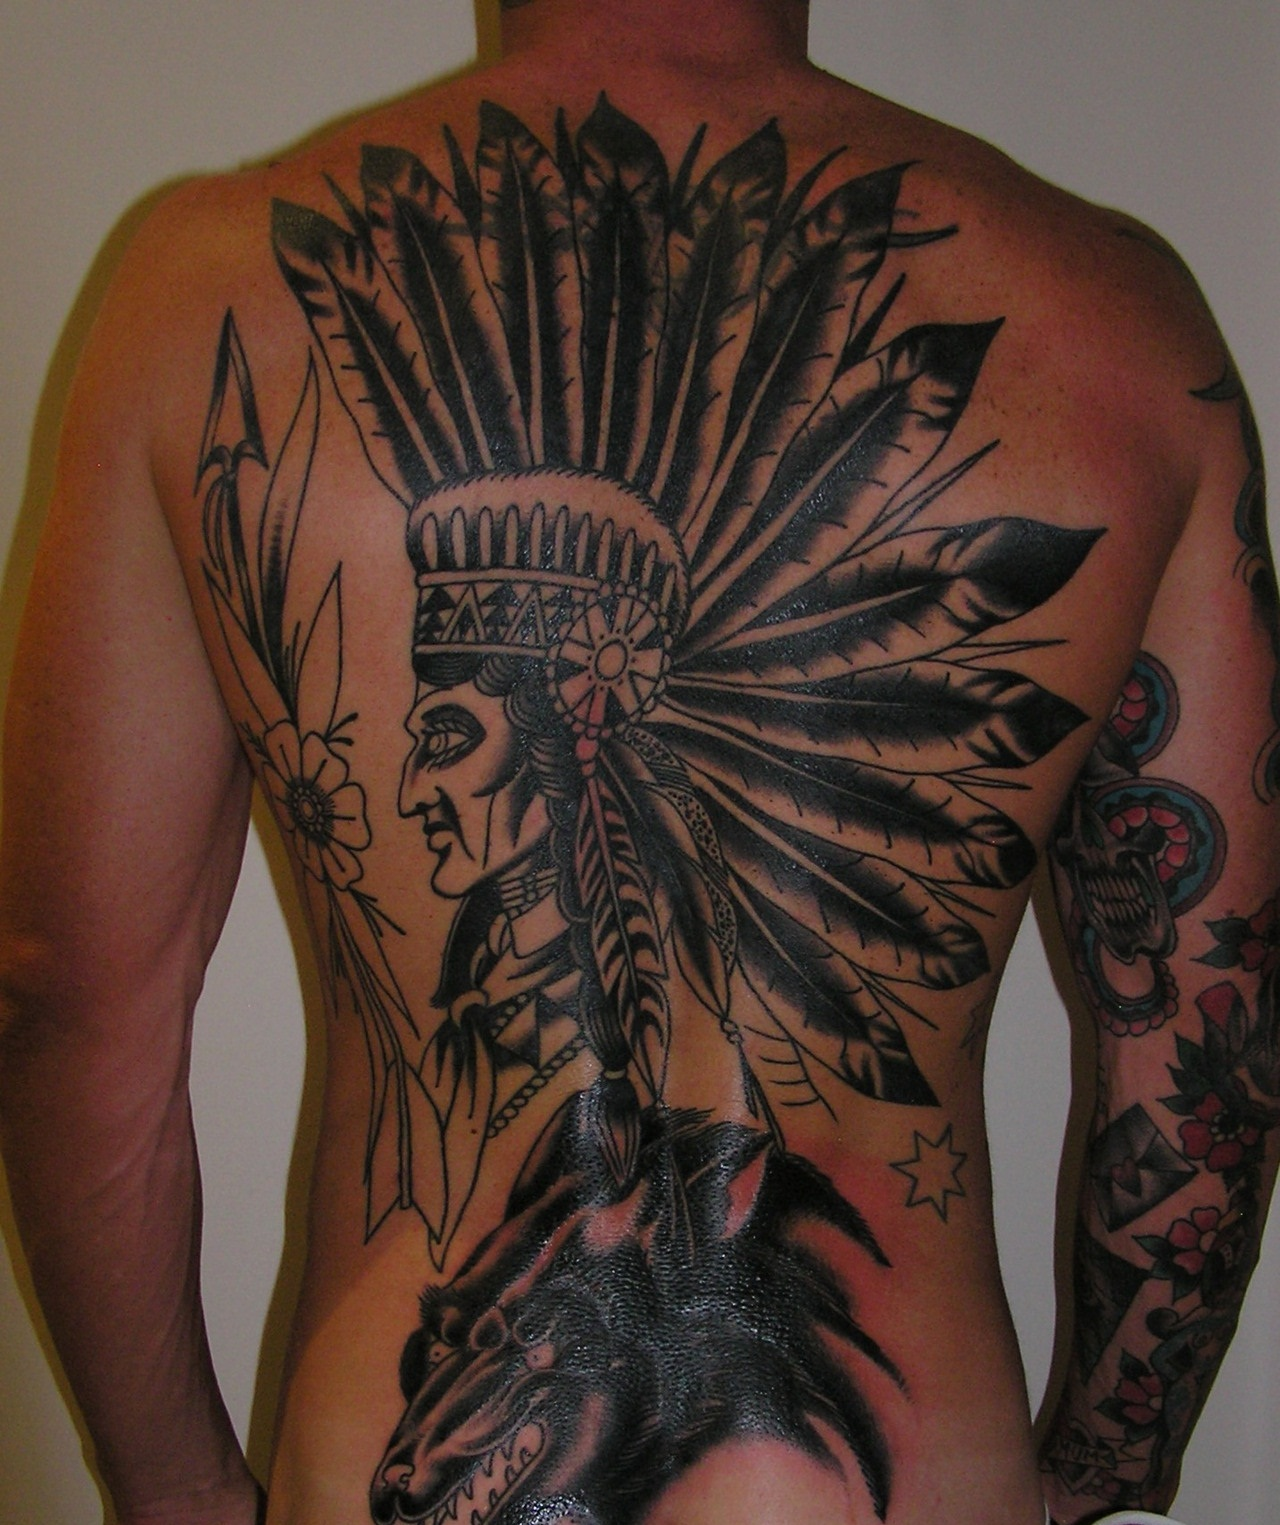 15 American Coat of Arms Army Tattoo This is similar to one that we saw earlier but with a more realistic aesthetics 16 Traditional Army Tattoo